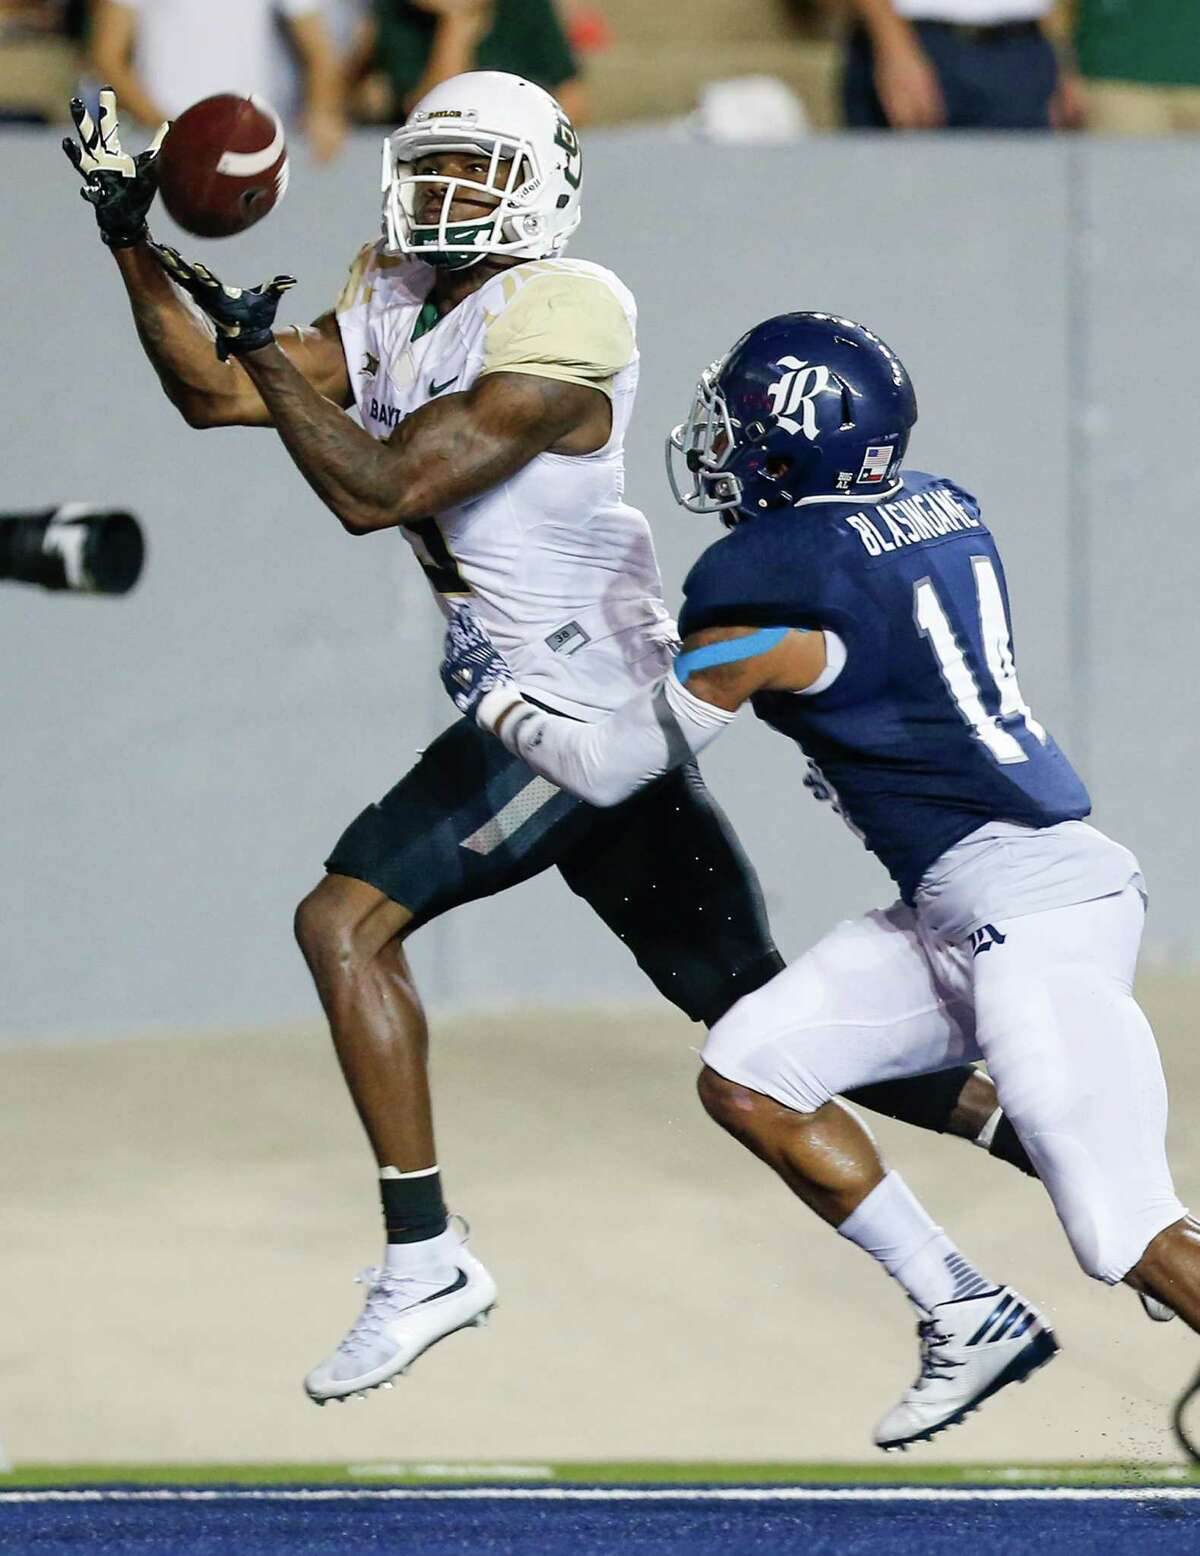 Baylor wide receiver KD Cannon (9) beats Rice cornerback J.T. Blasingame (14) for a 10-yard touchdown reception during the second quarter of an NCAA football game at Rice Stadium on Friday, Sept. 16, 2016, in Houston.